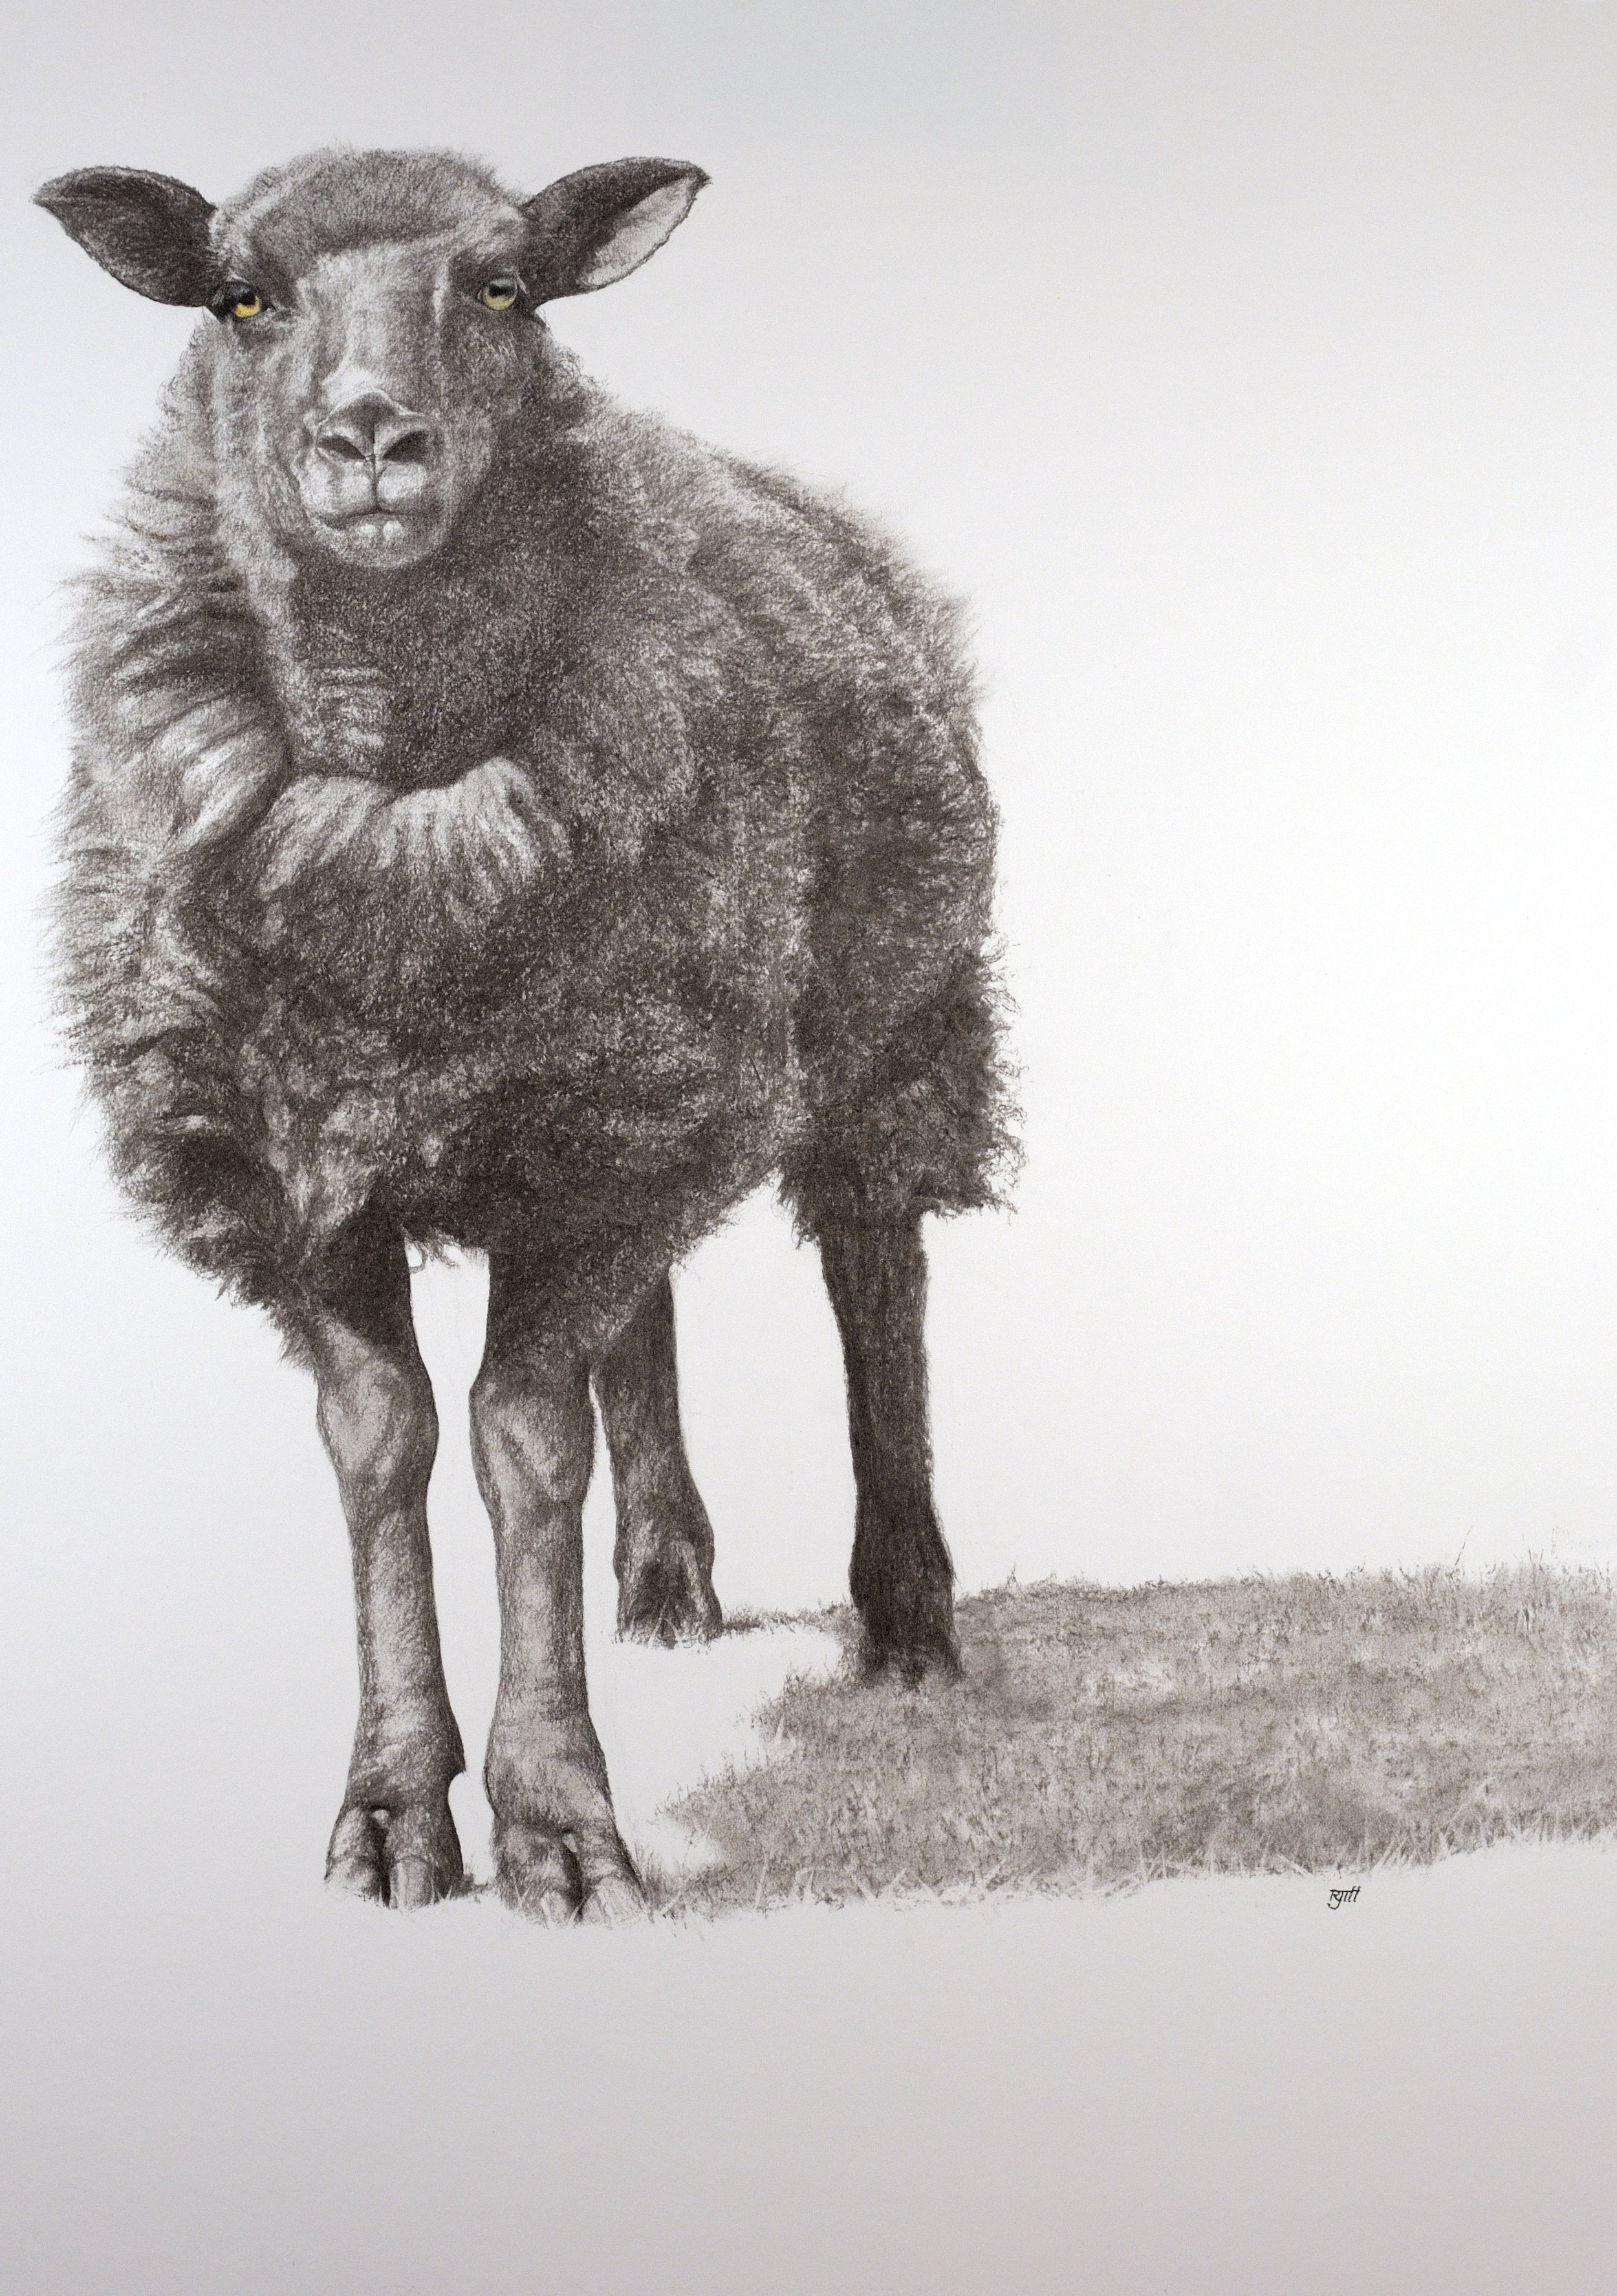 Dark One, 2018, charcoal with pastel, 33 x 23 in, $3,200